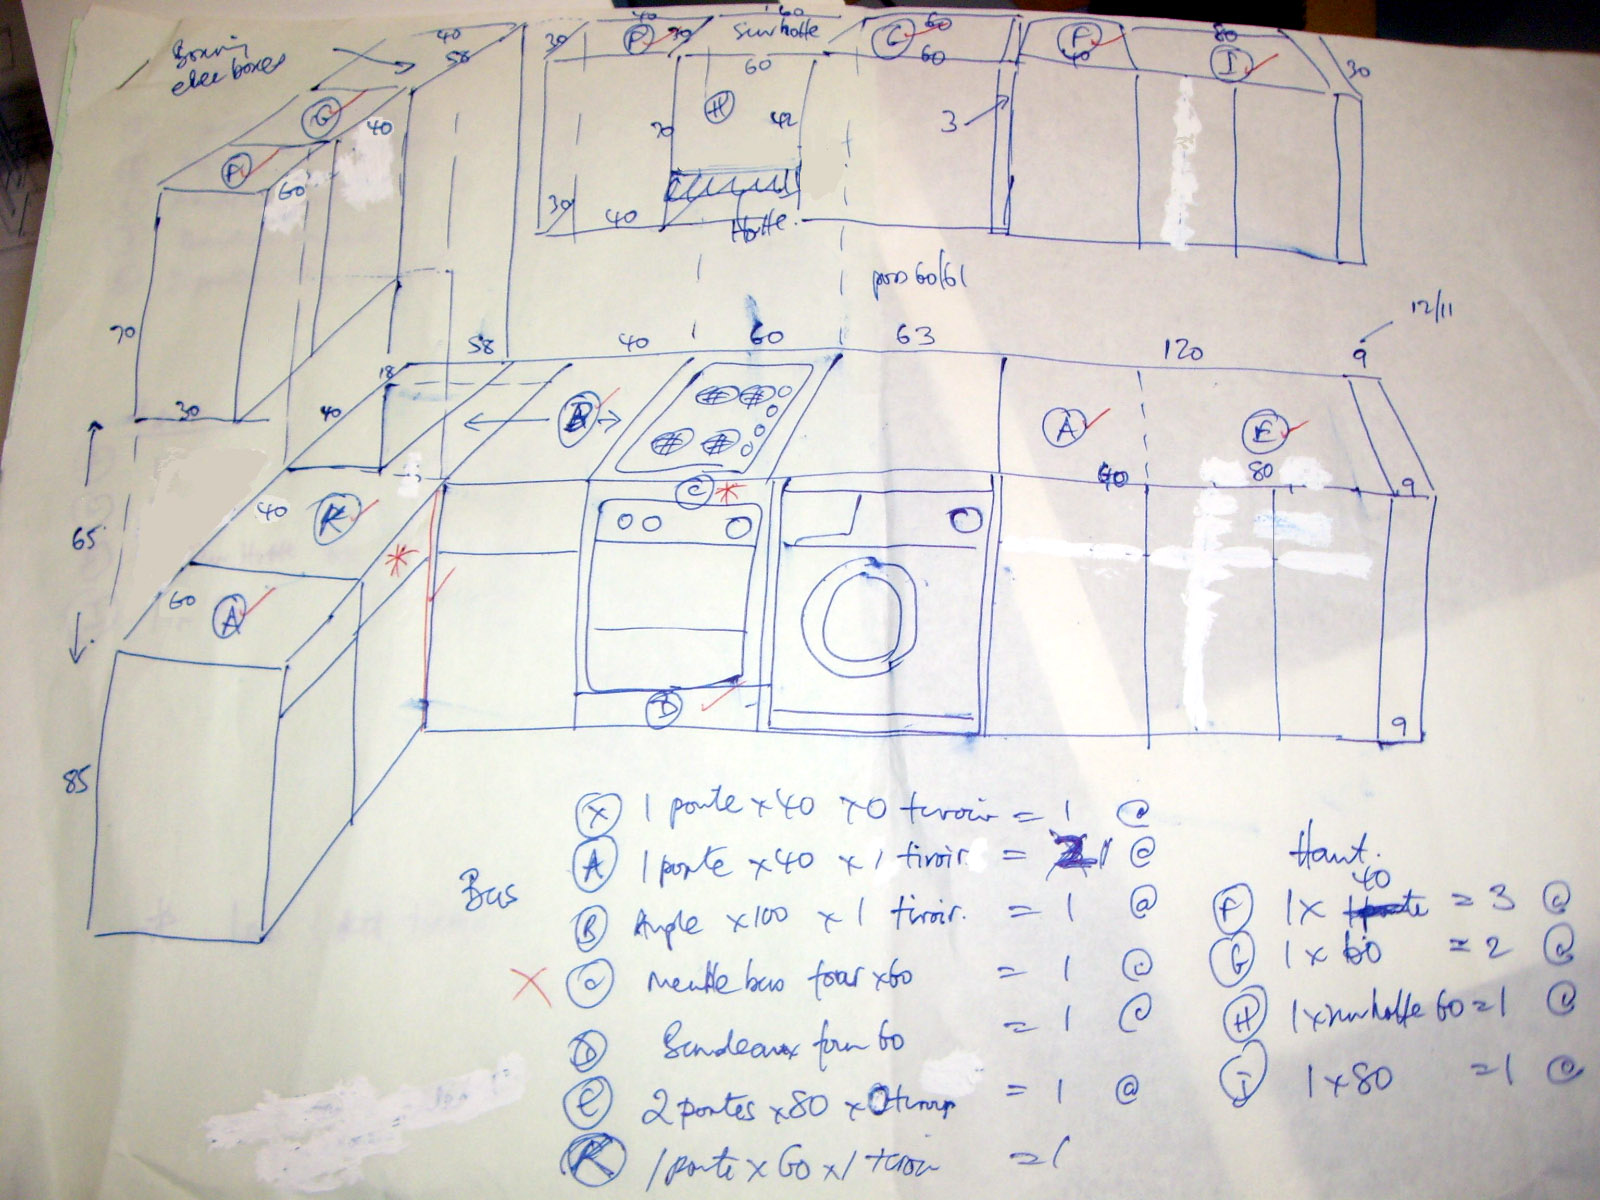 Kitchen Wiring Diagram ndash Wiring Diagram ndash readingrat net